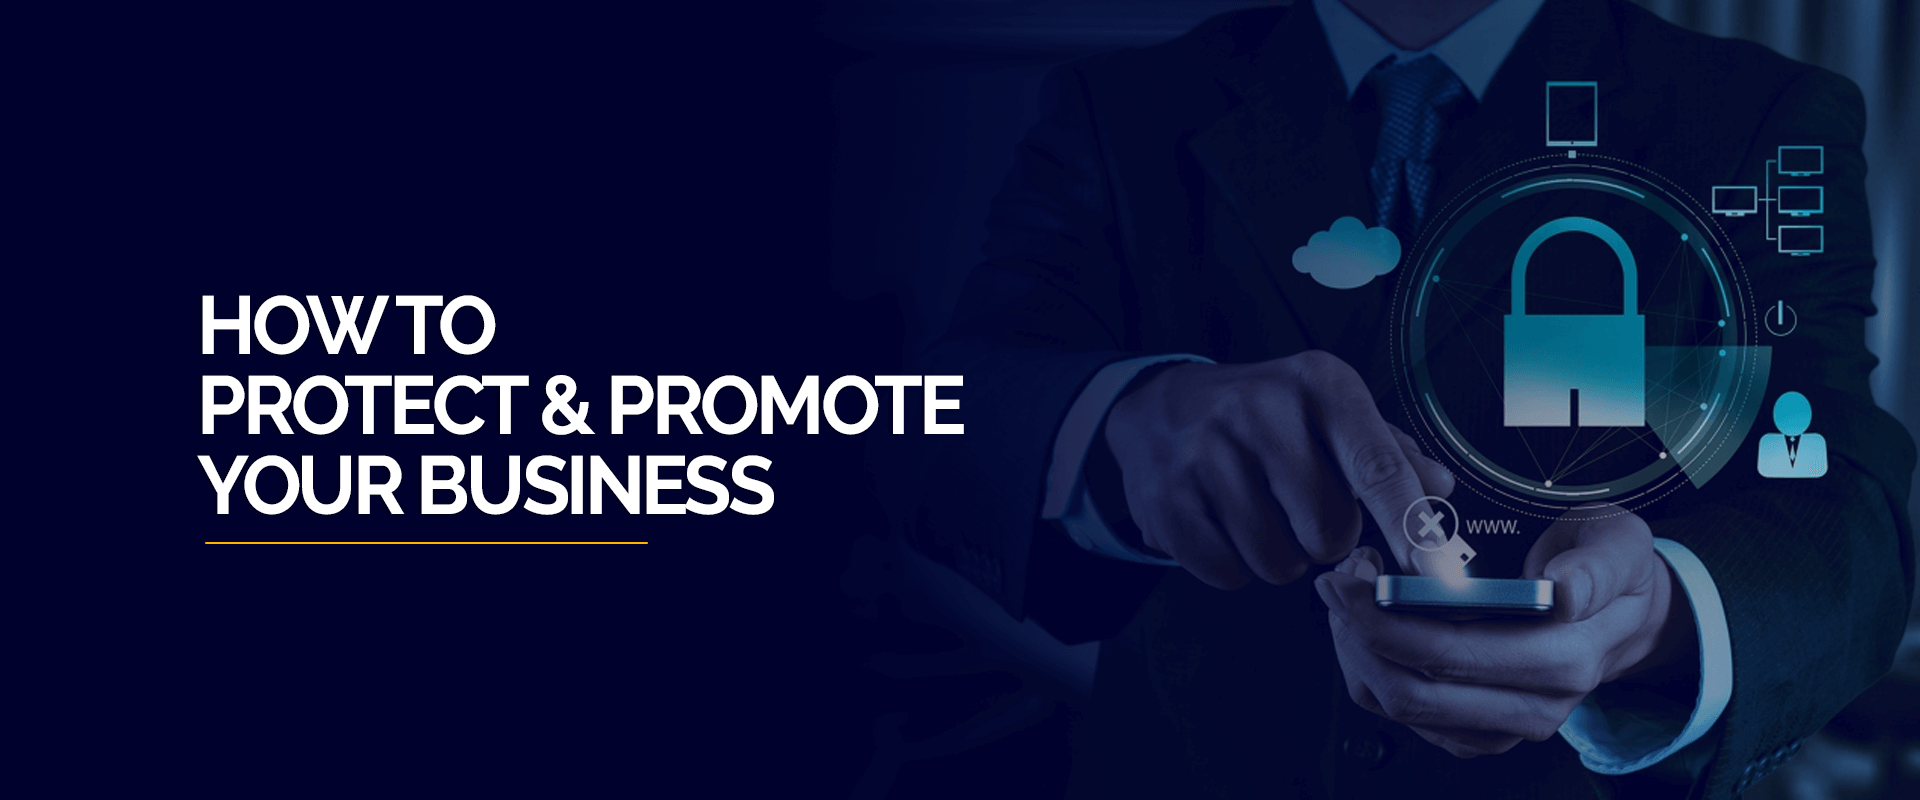 How to protect and promote your business